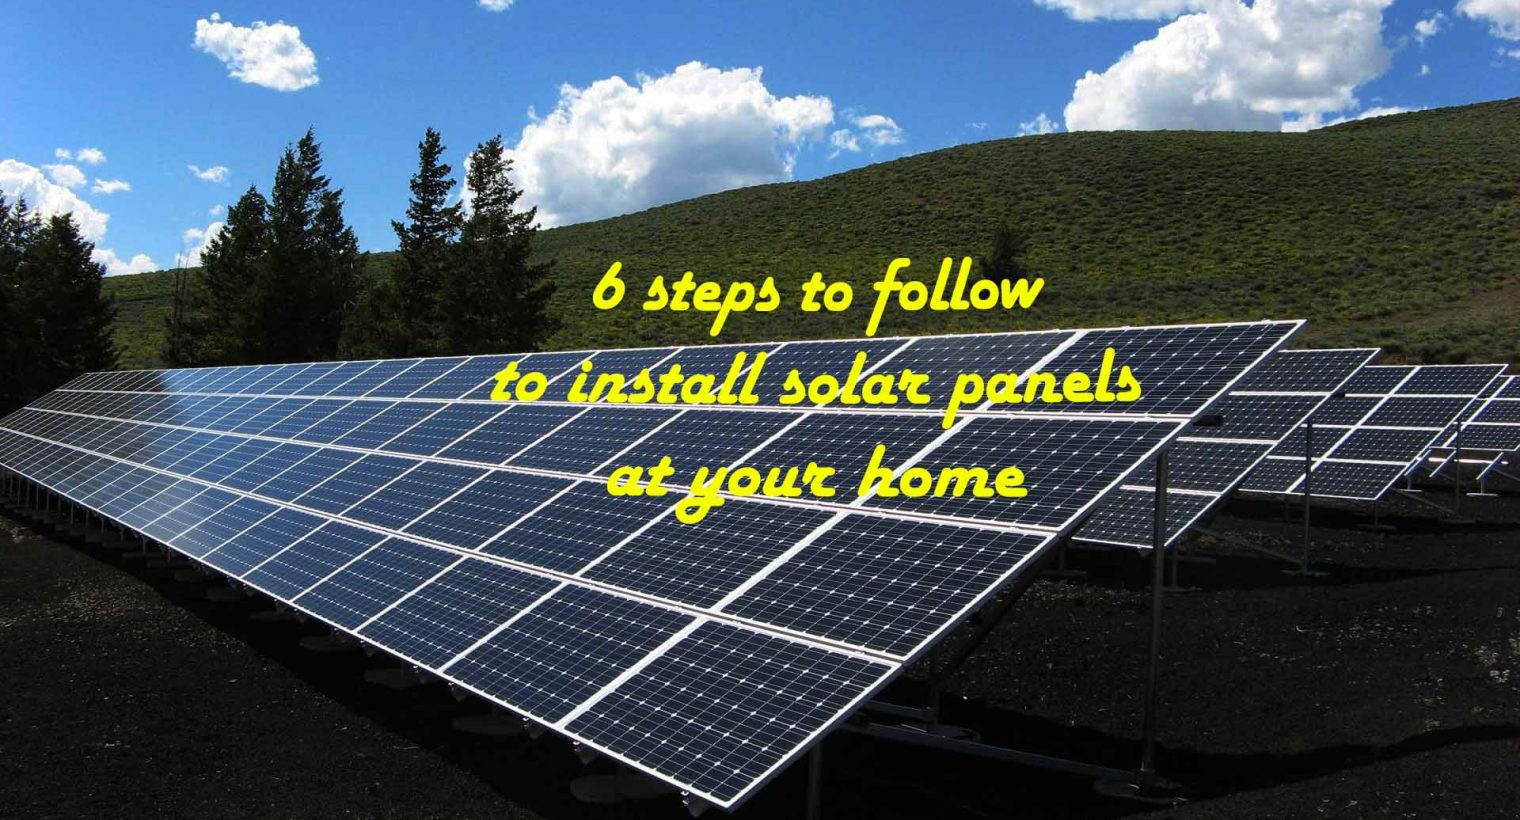 Solar panel: clean energy for your home